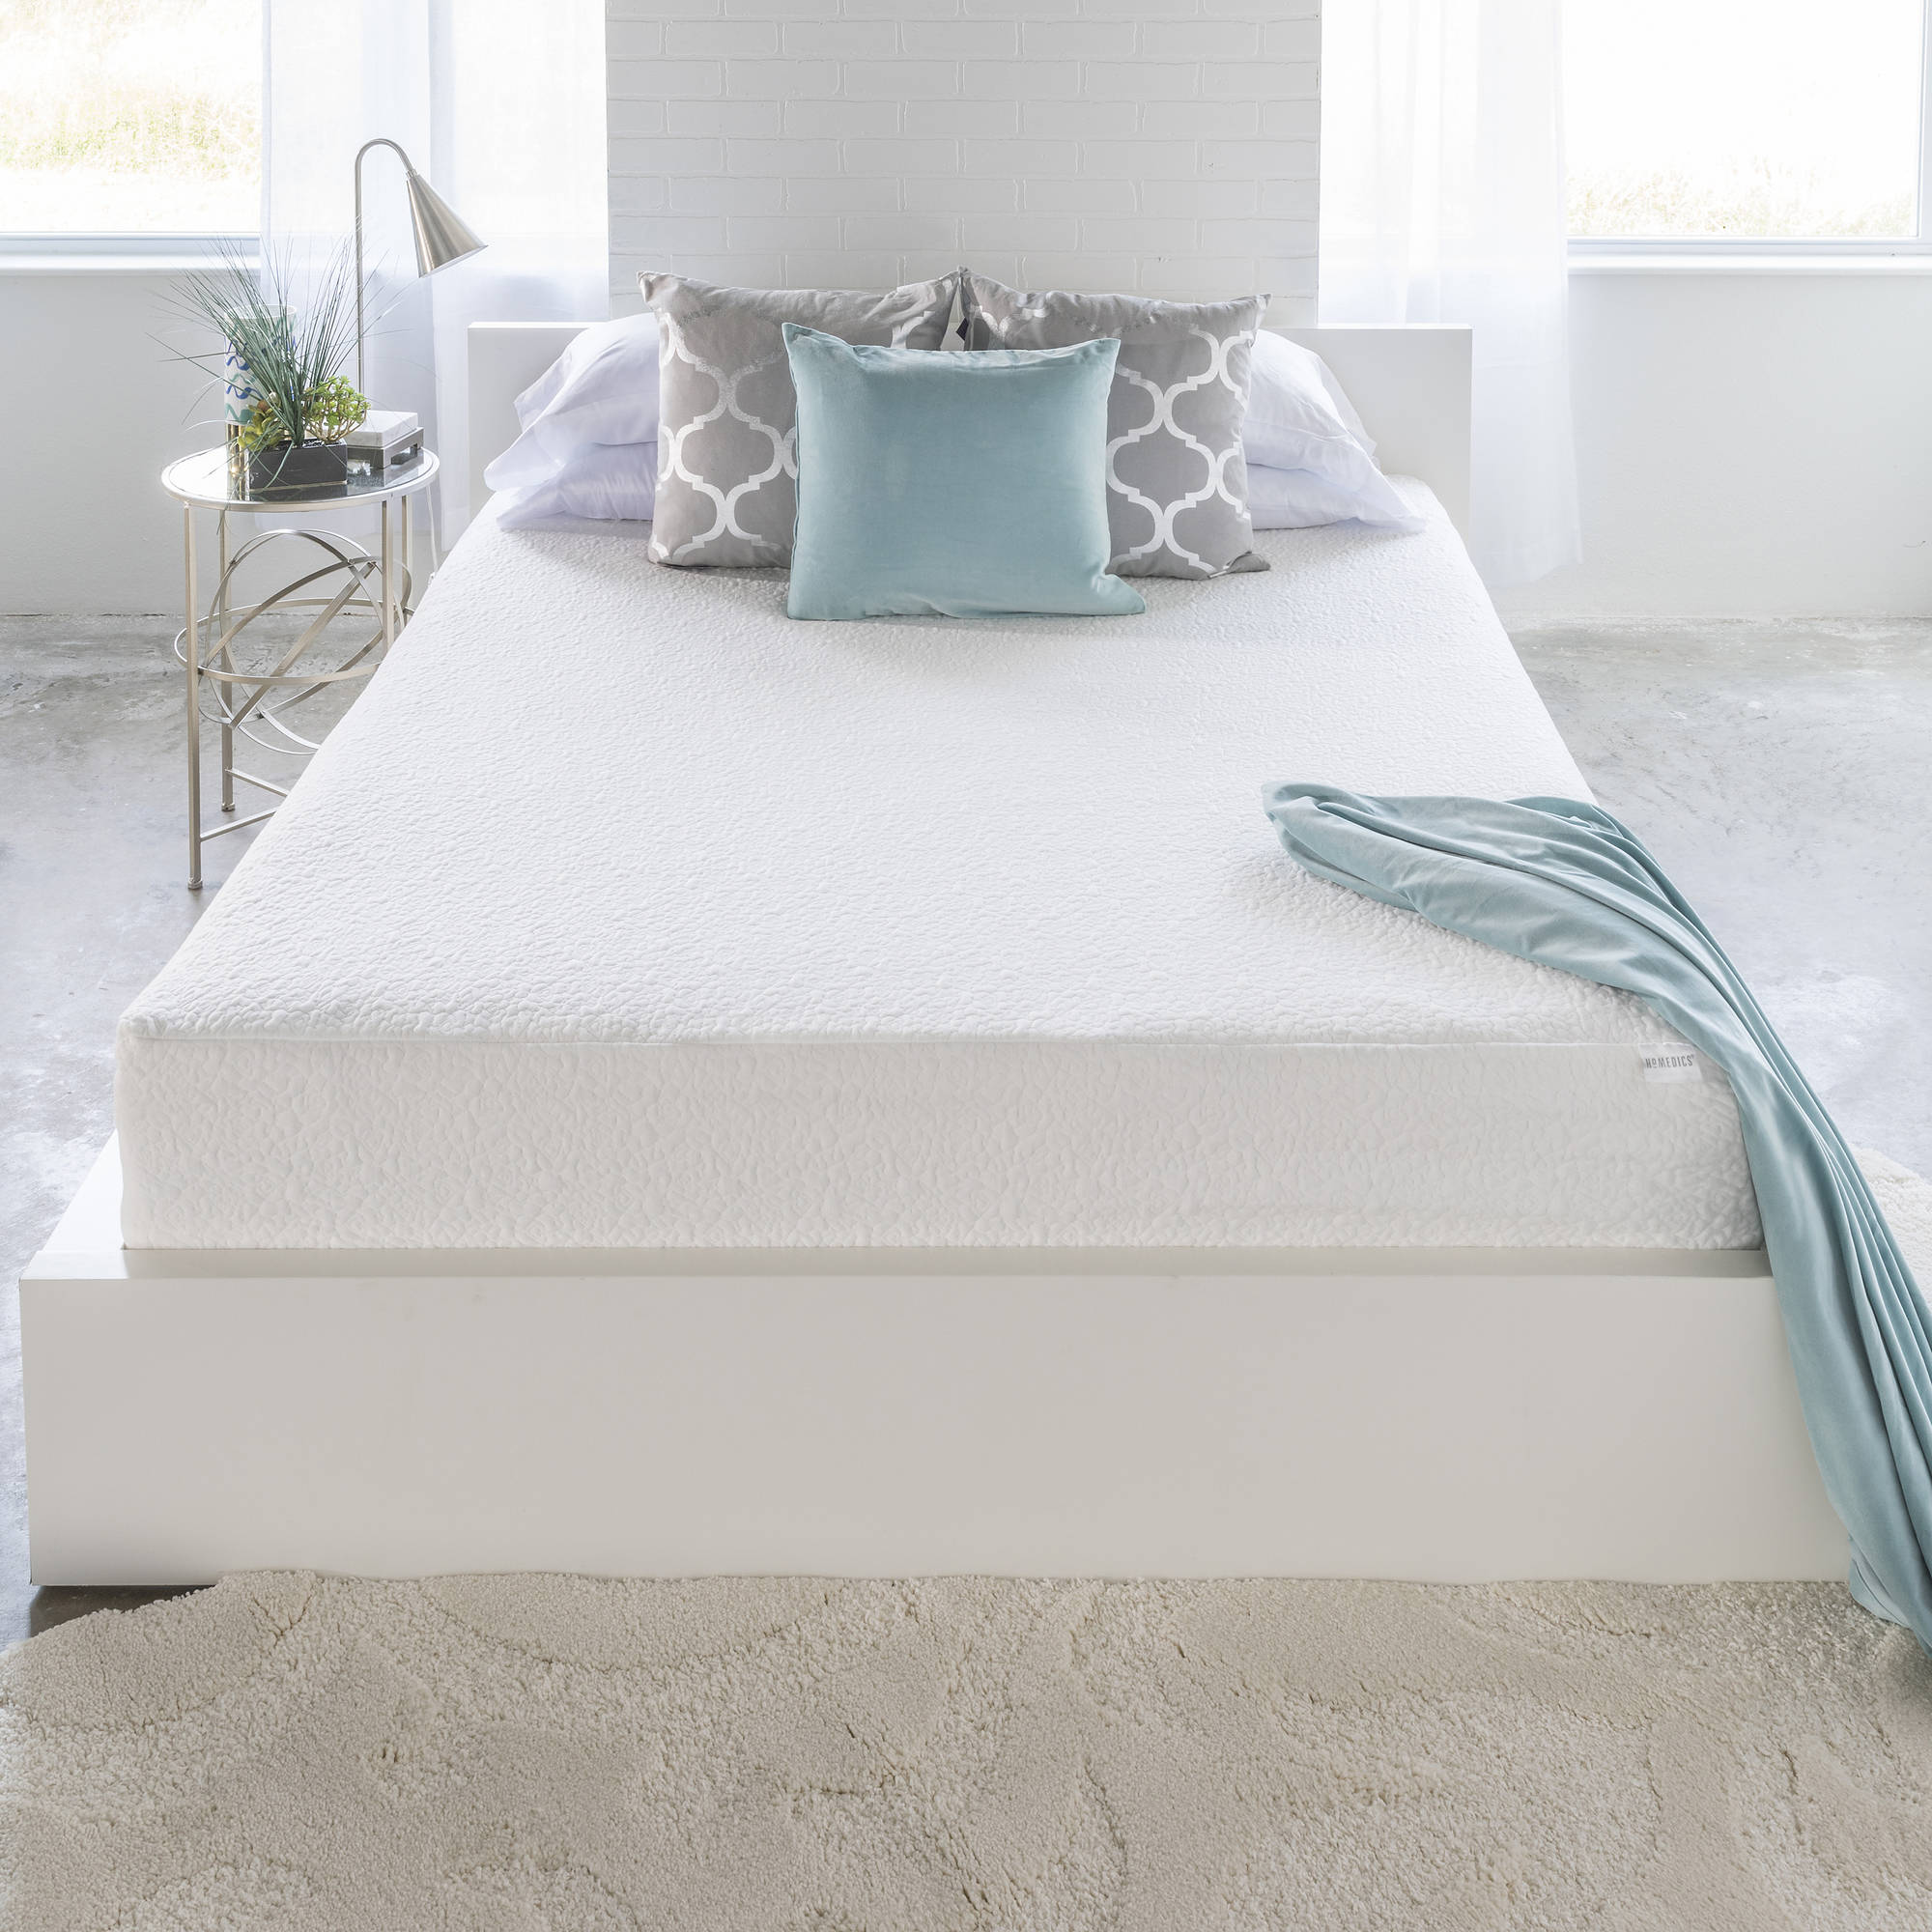 "HoMedics 12"" Memory Foam Mattress, Multiple Sizes"